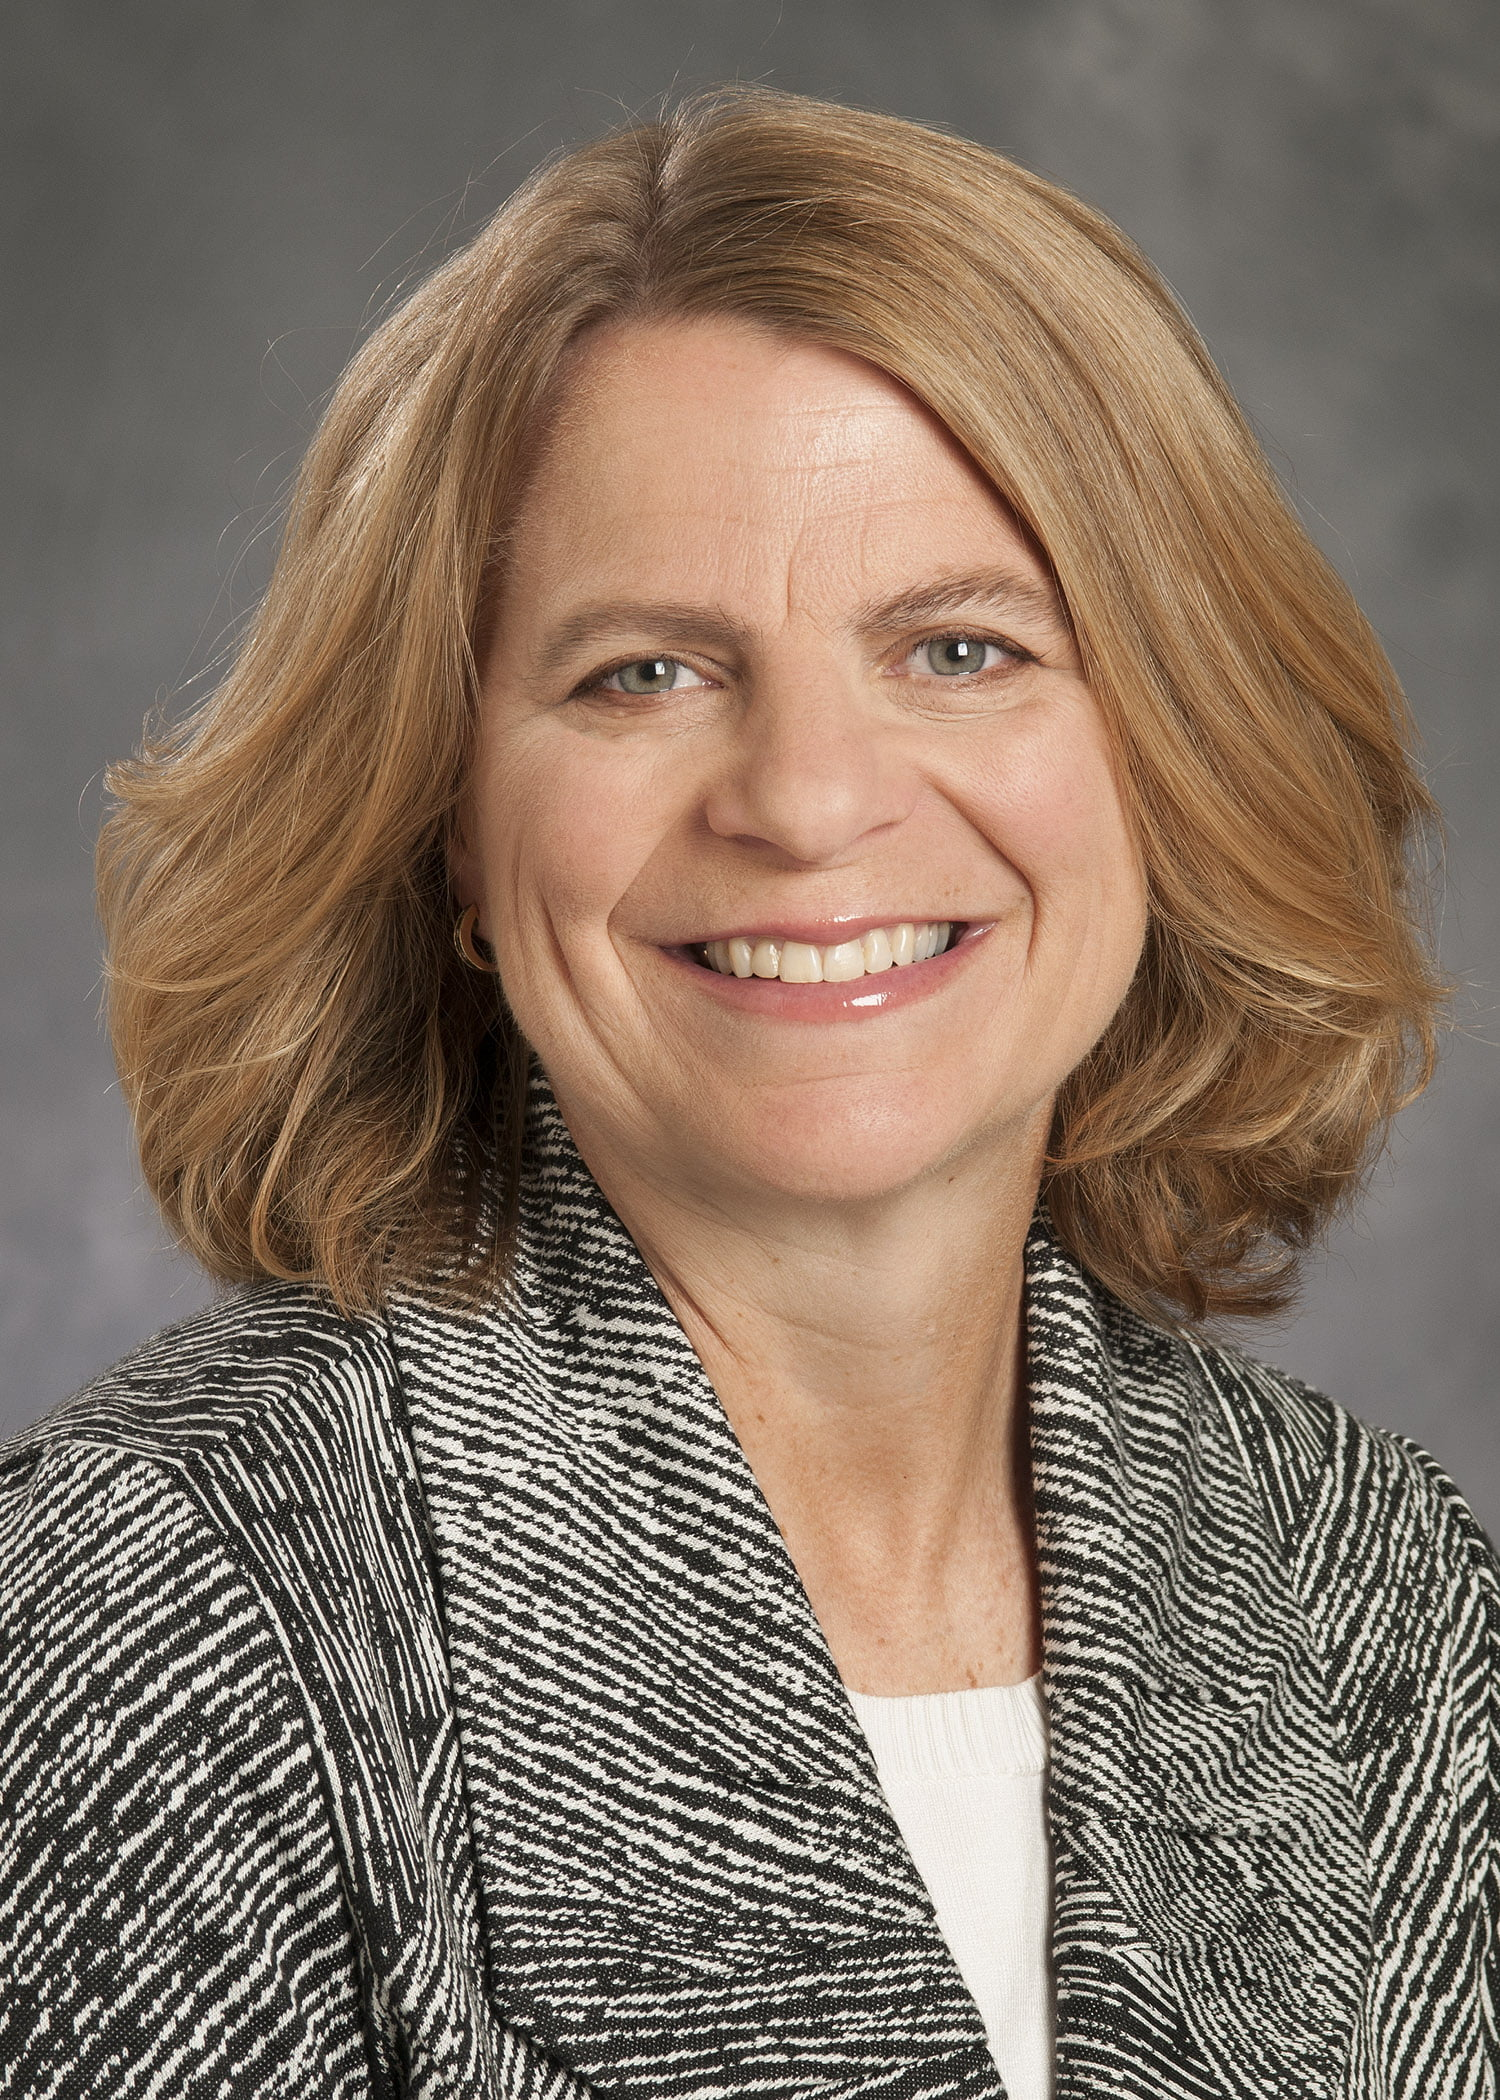 Allina Health President and CEO Penny Wheeler, M.D., Joins Cedar's Board of Directors to Support Company's Growth